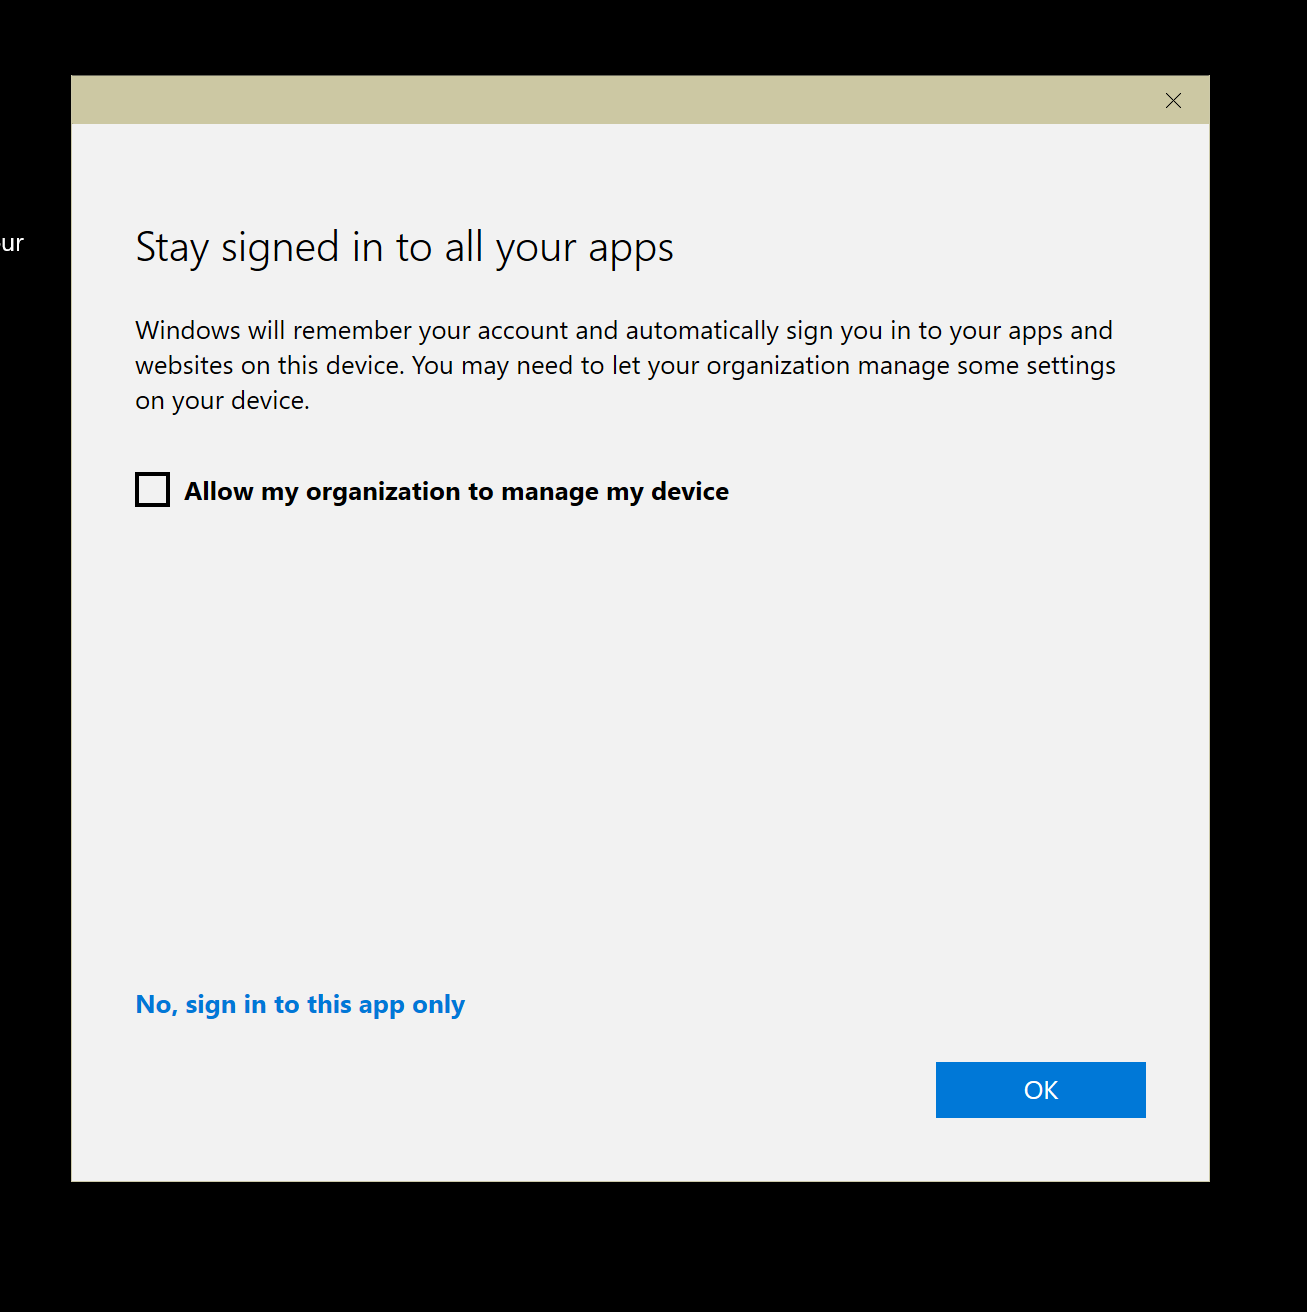 The checkbox doesn't stop the app adding an account to your Operating System